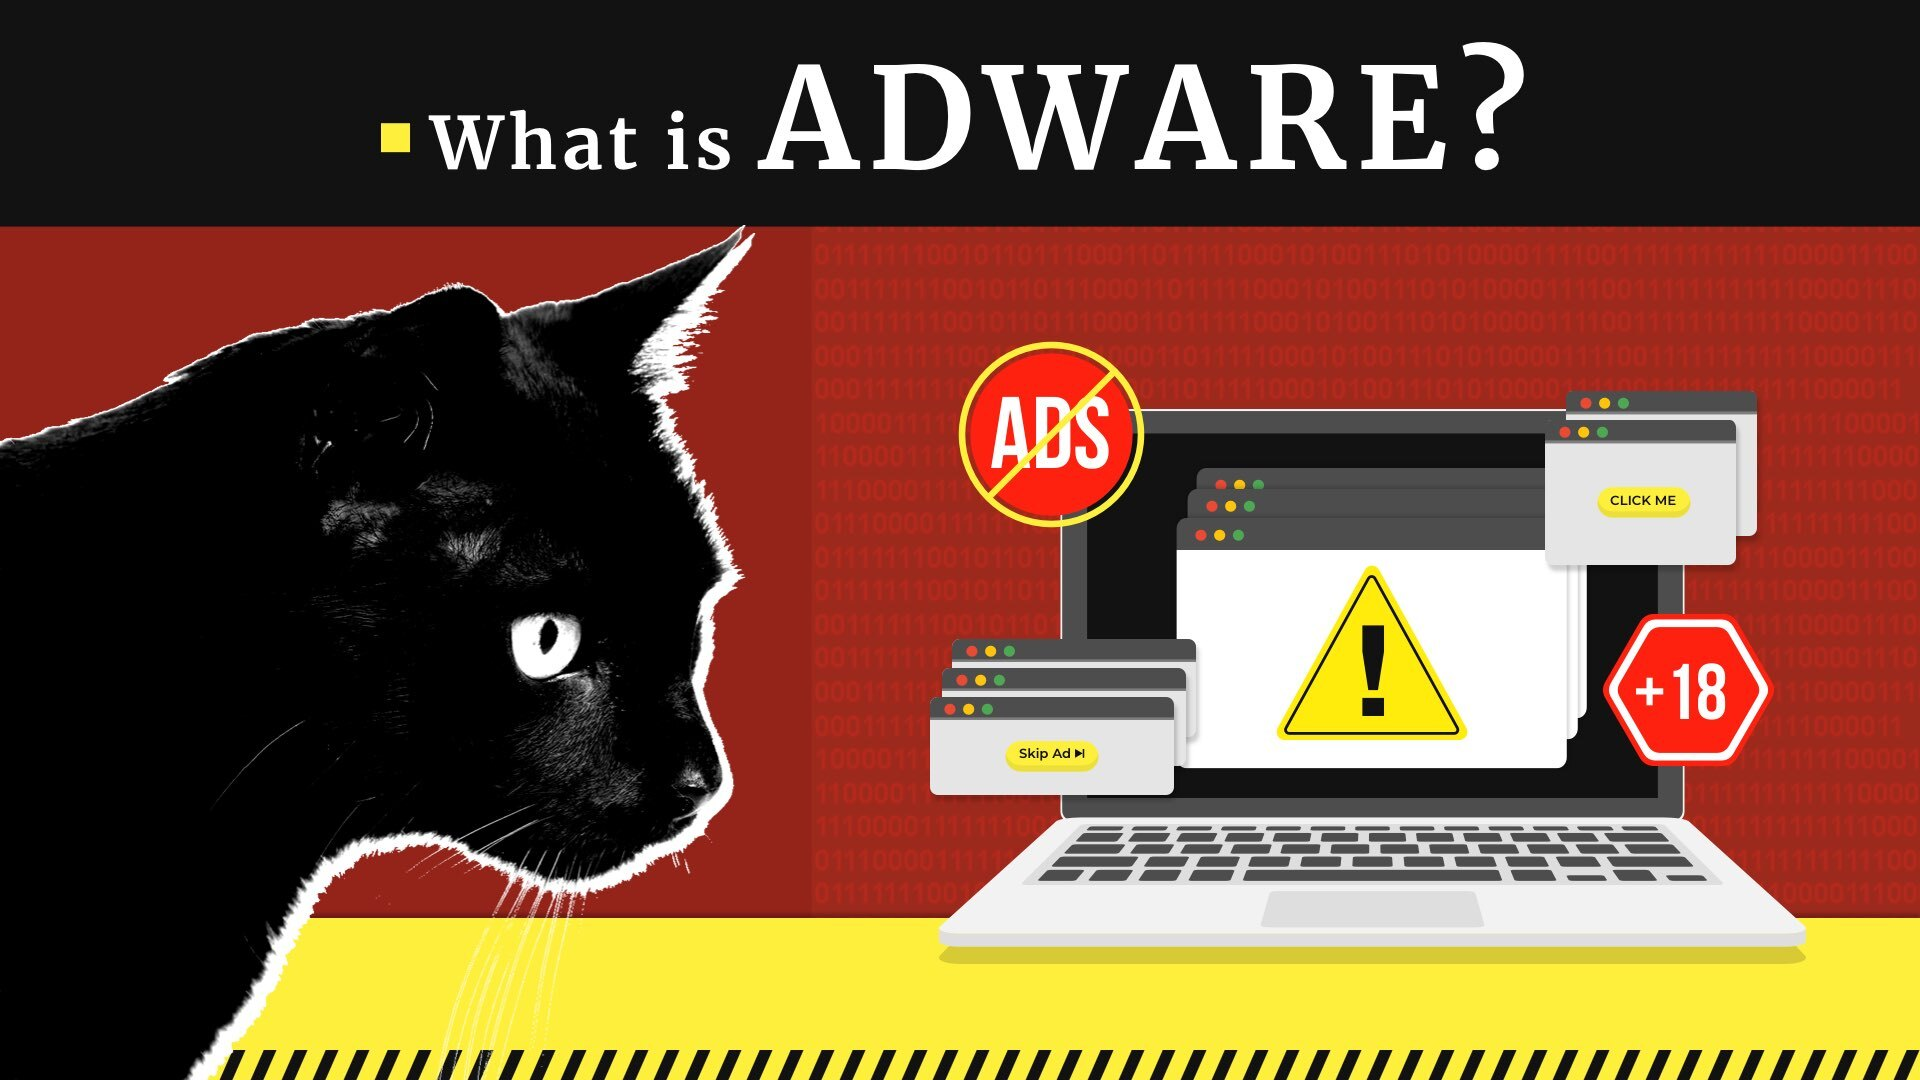 Adware - What is it & how to remove it? Keep Your Privacy Well